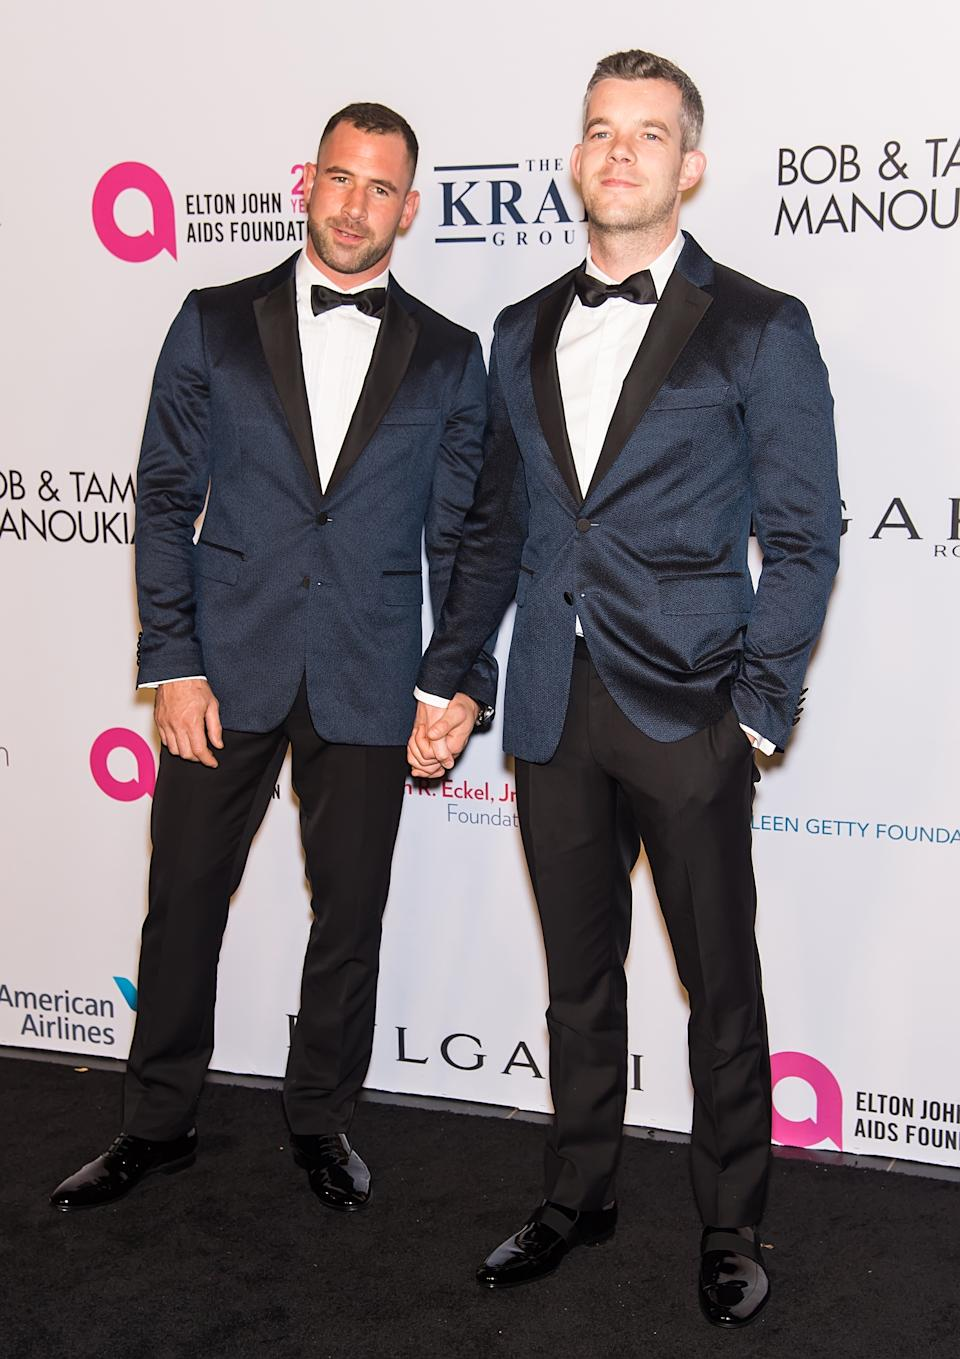 Russell Tovey (R) and Steve Brockman attend Elton John AIDS Foundation Commemorates Its 25th Year And Honors Founder Sir Elton John During New York Fall Gala at Cathedral of St. John the Divine on November 7, 2017 in New York City.  (Photo by Gilbert Carrasquillo/FilmMagic)